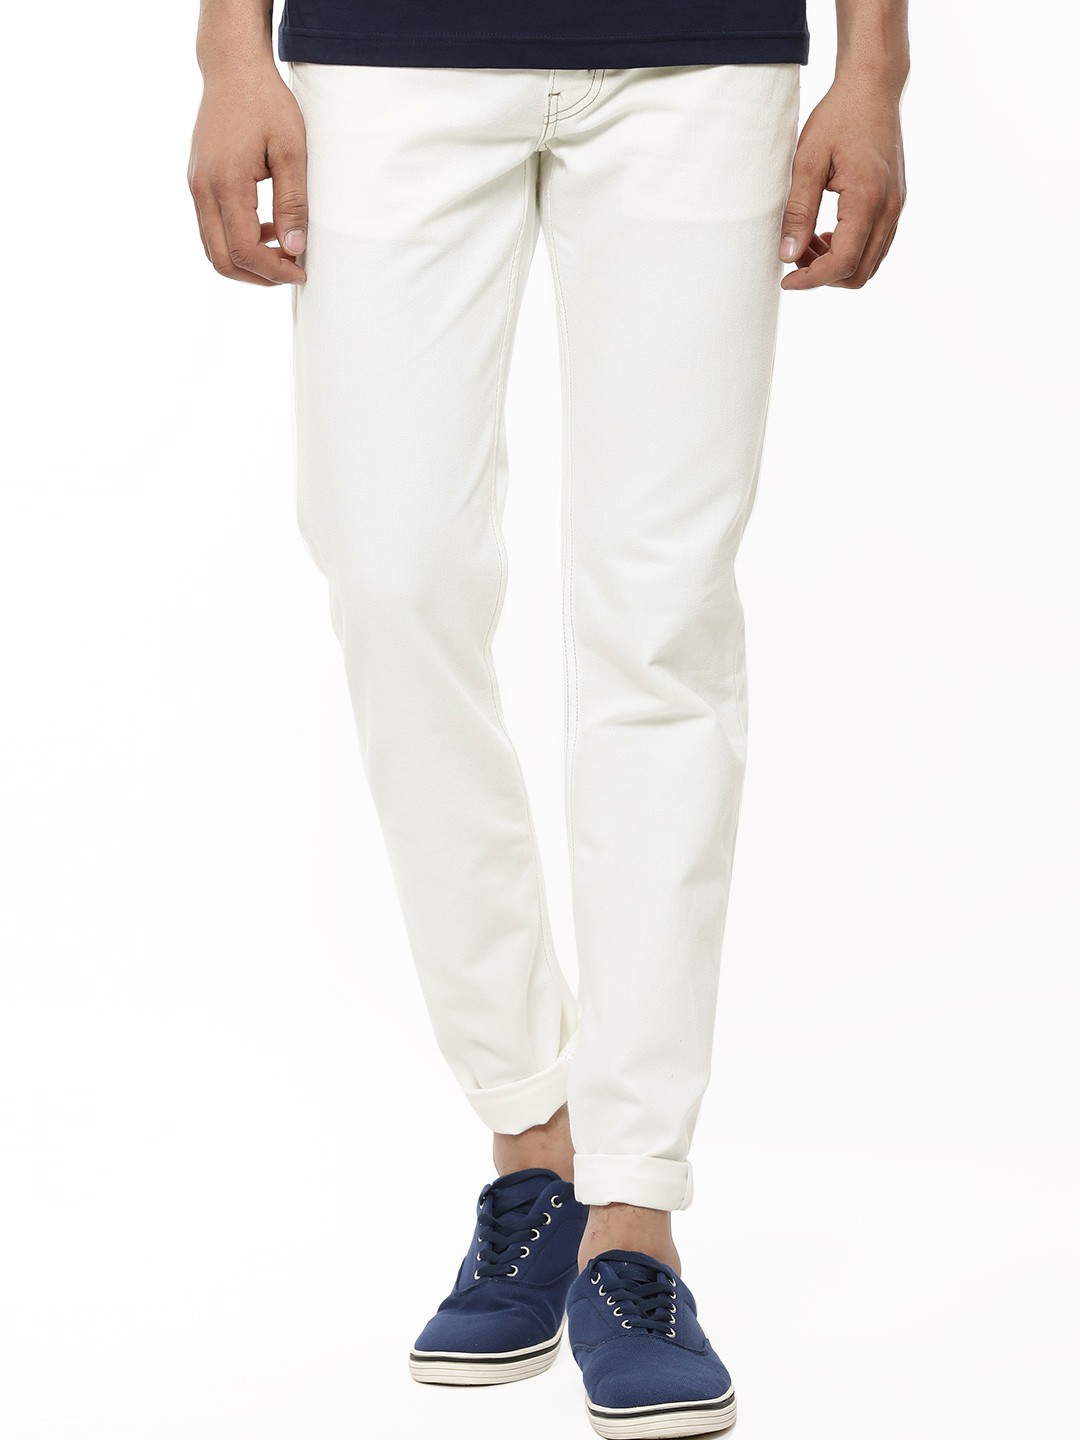 Buy LEVI'S 511 Slim Fit Stretch Jeans For Men - Men's Off-White ...